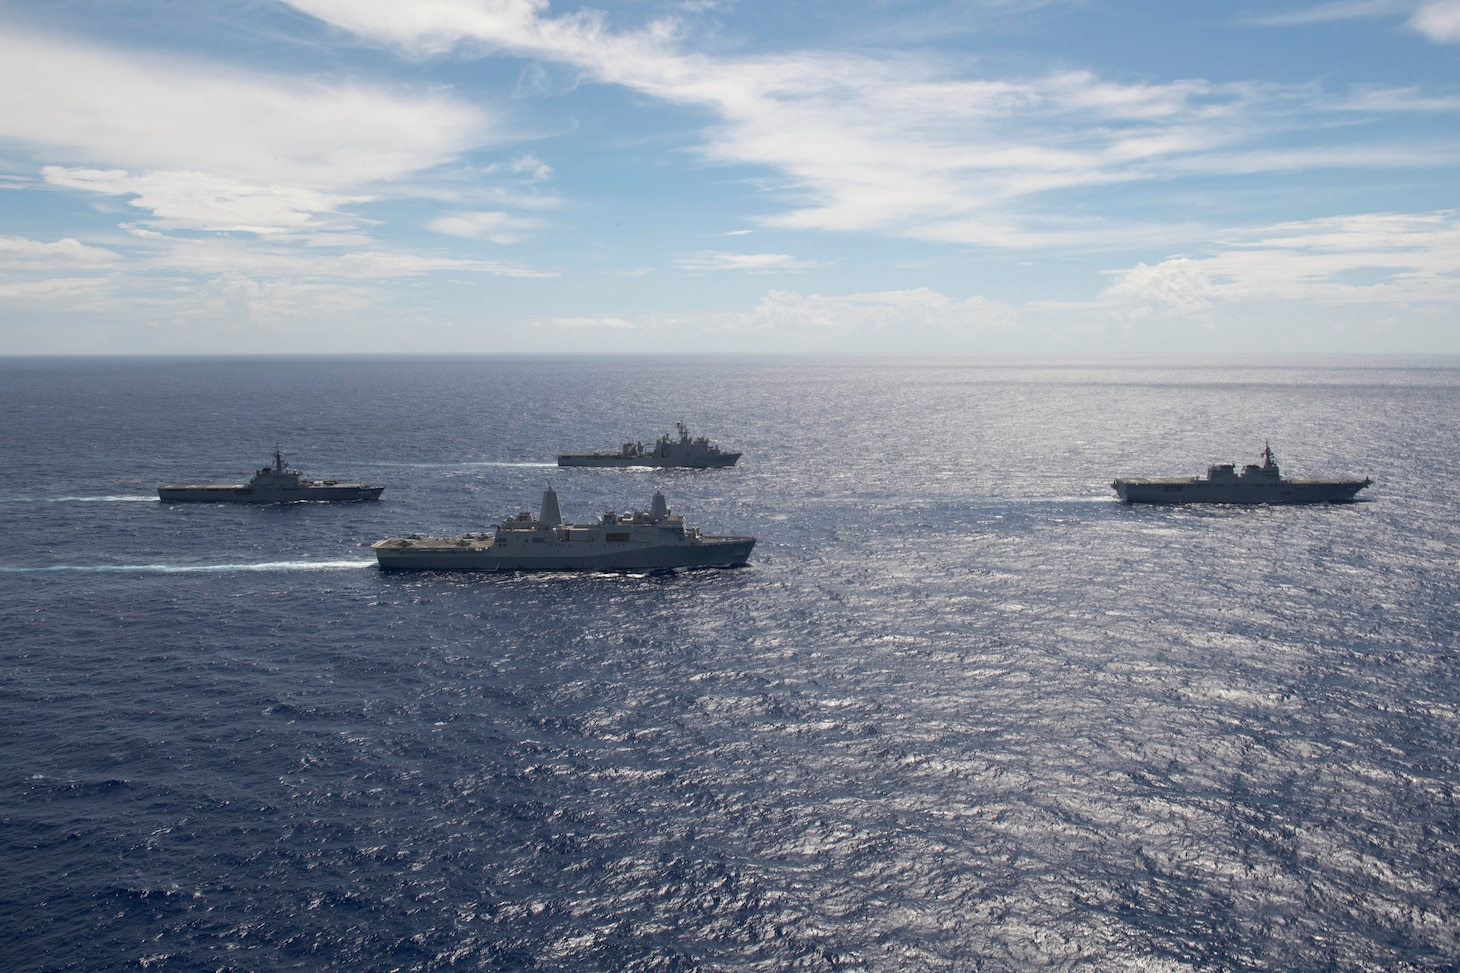 The Wasp Amphibious Ready Group is transiting with JS Ise and JS Kunisaki in the U.S. 7th Fleet area of operations.